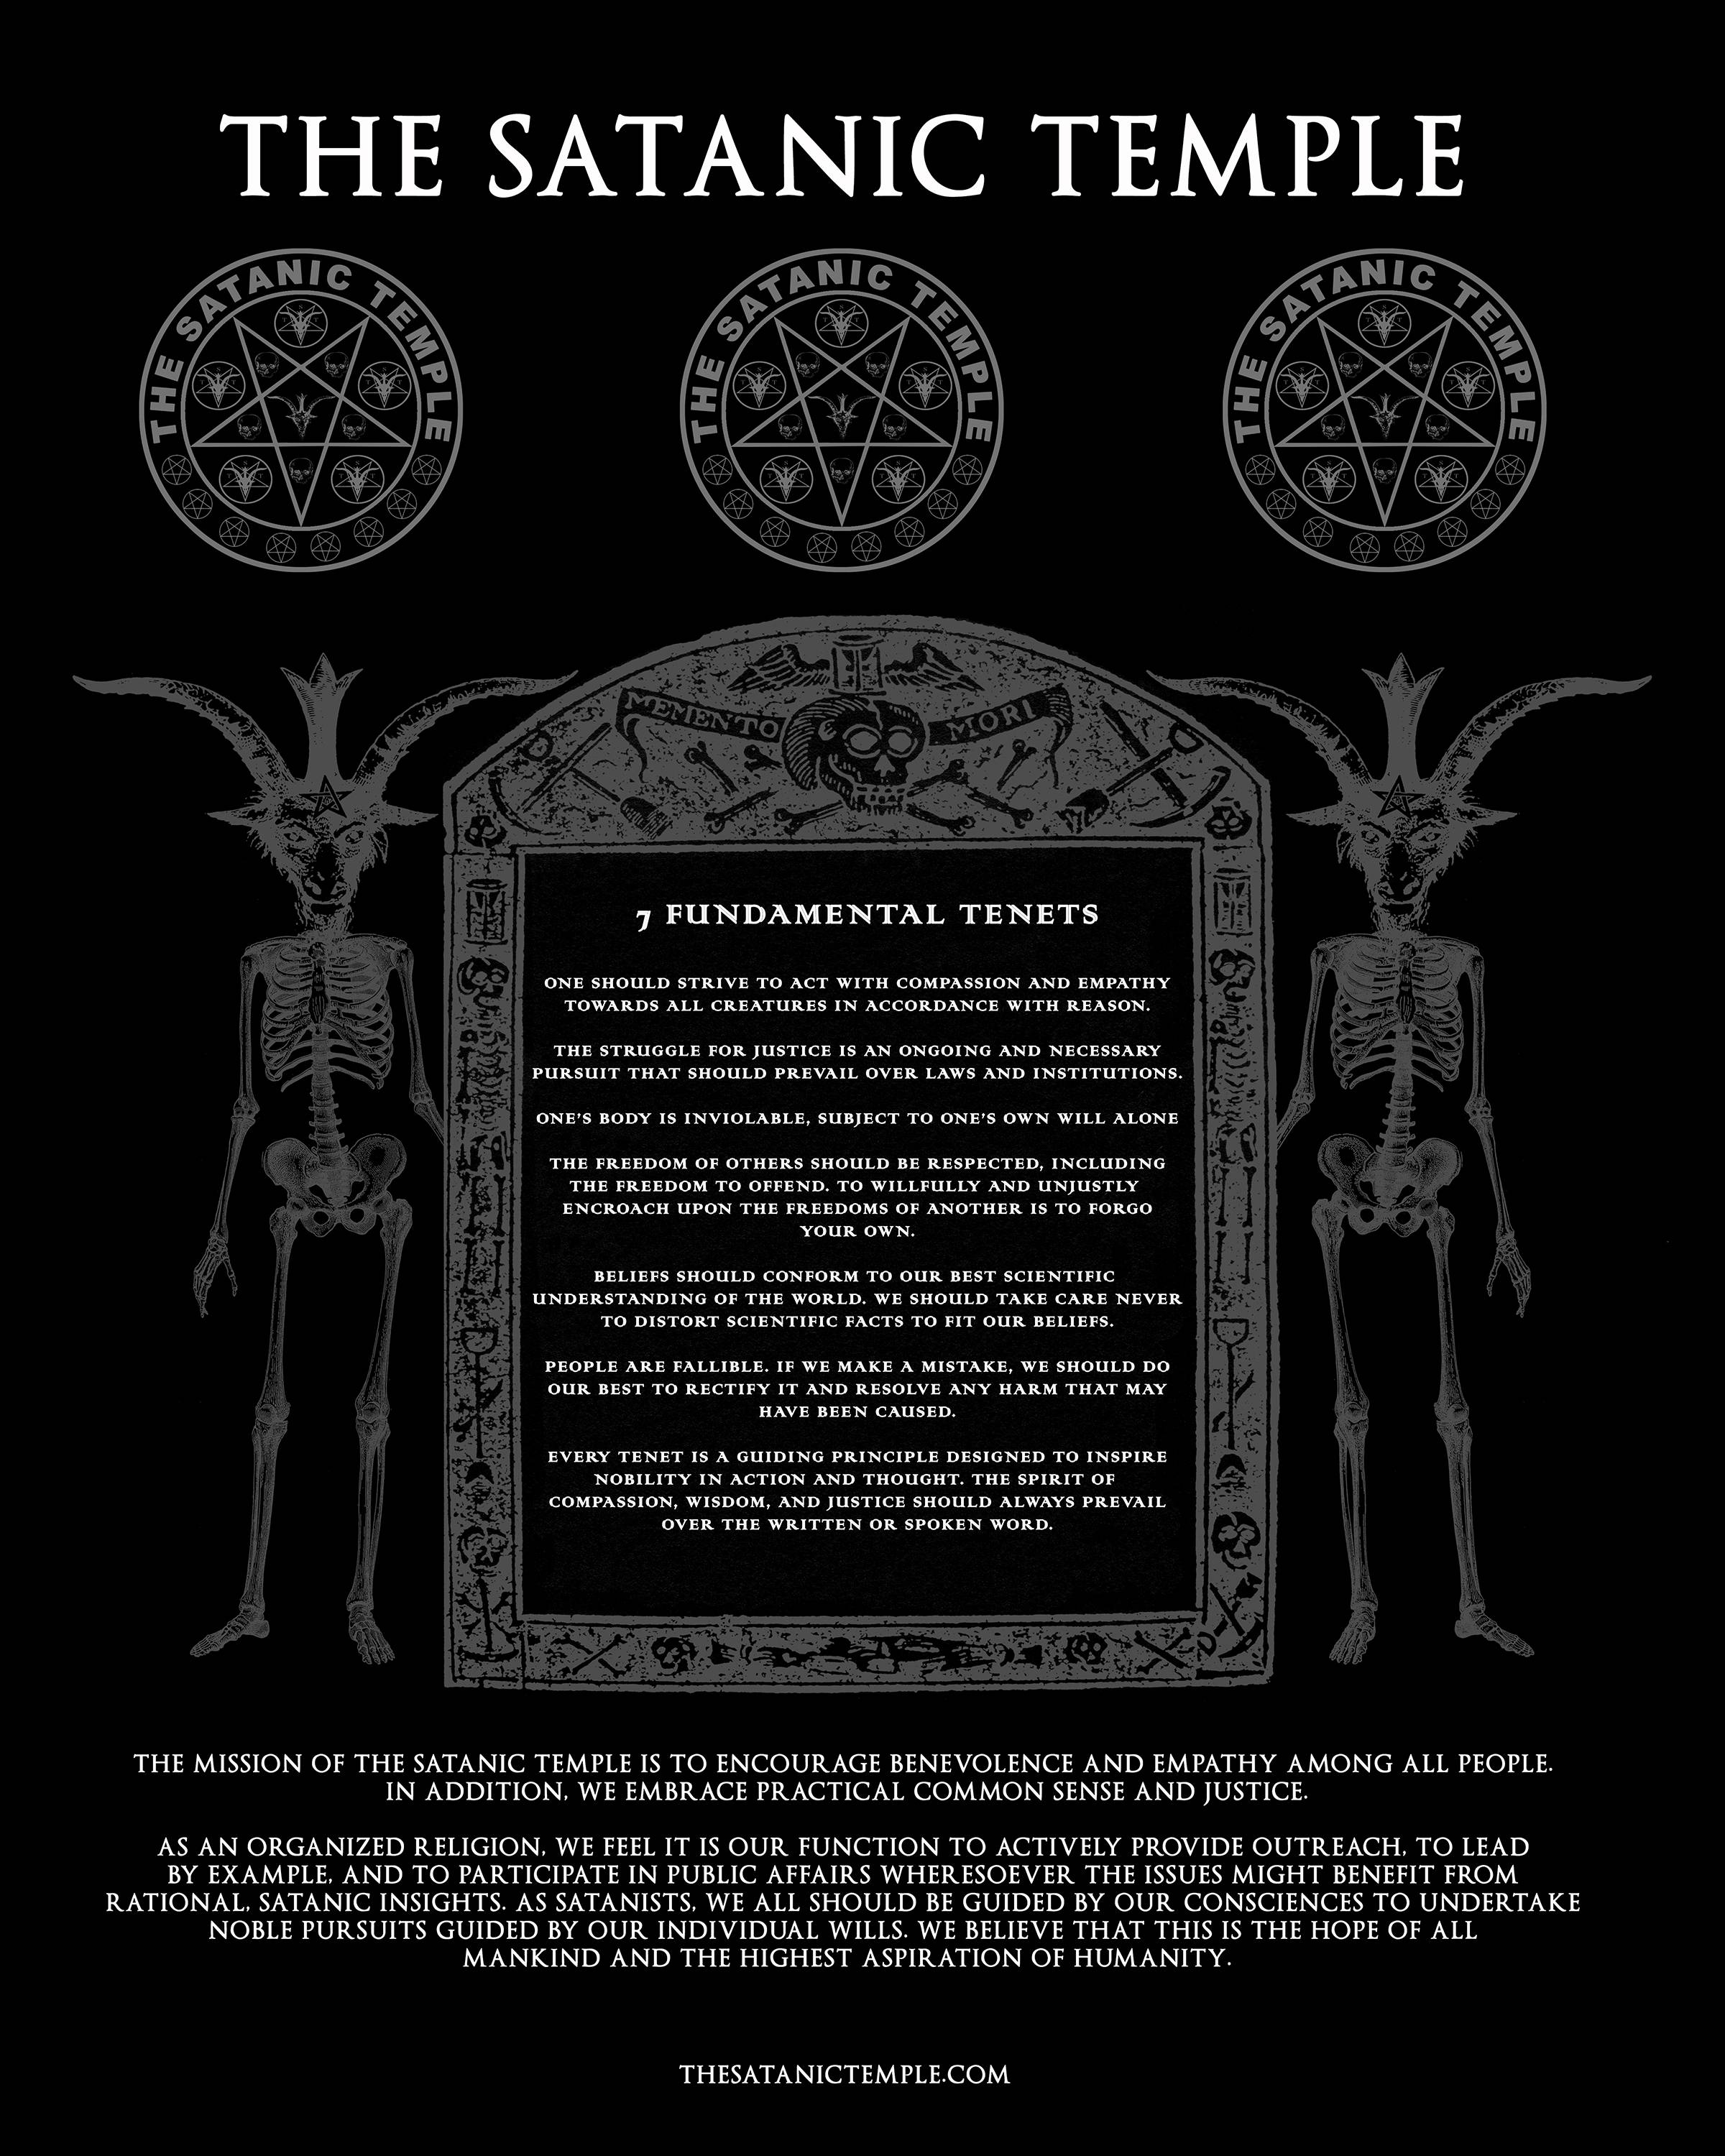 The Satanic Temple S Seven Tenets Are Far More Ethical Than The Ten Commandments Hemant Mehta Friendly Atheist Patheos